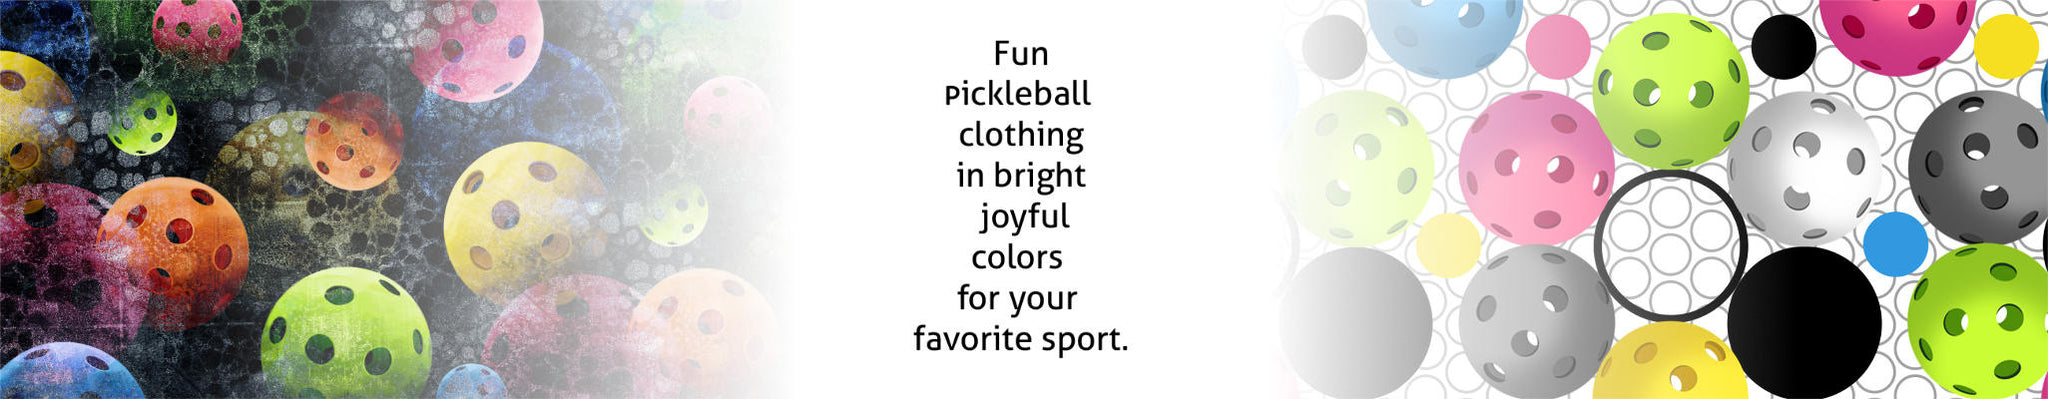 Pickle Ball clothing